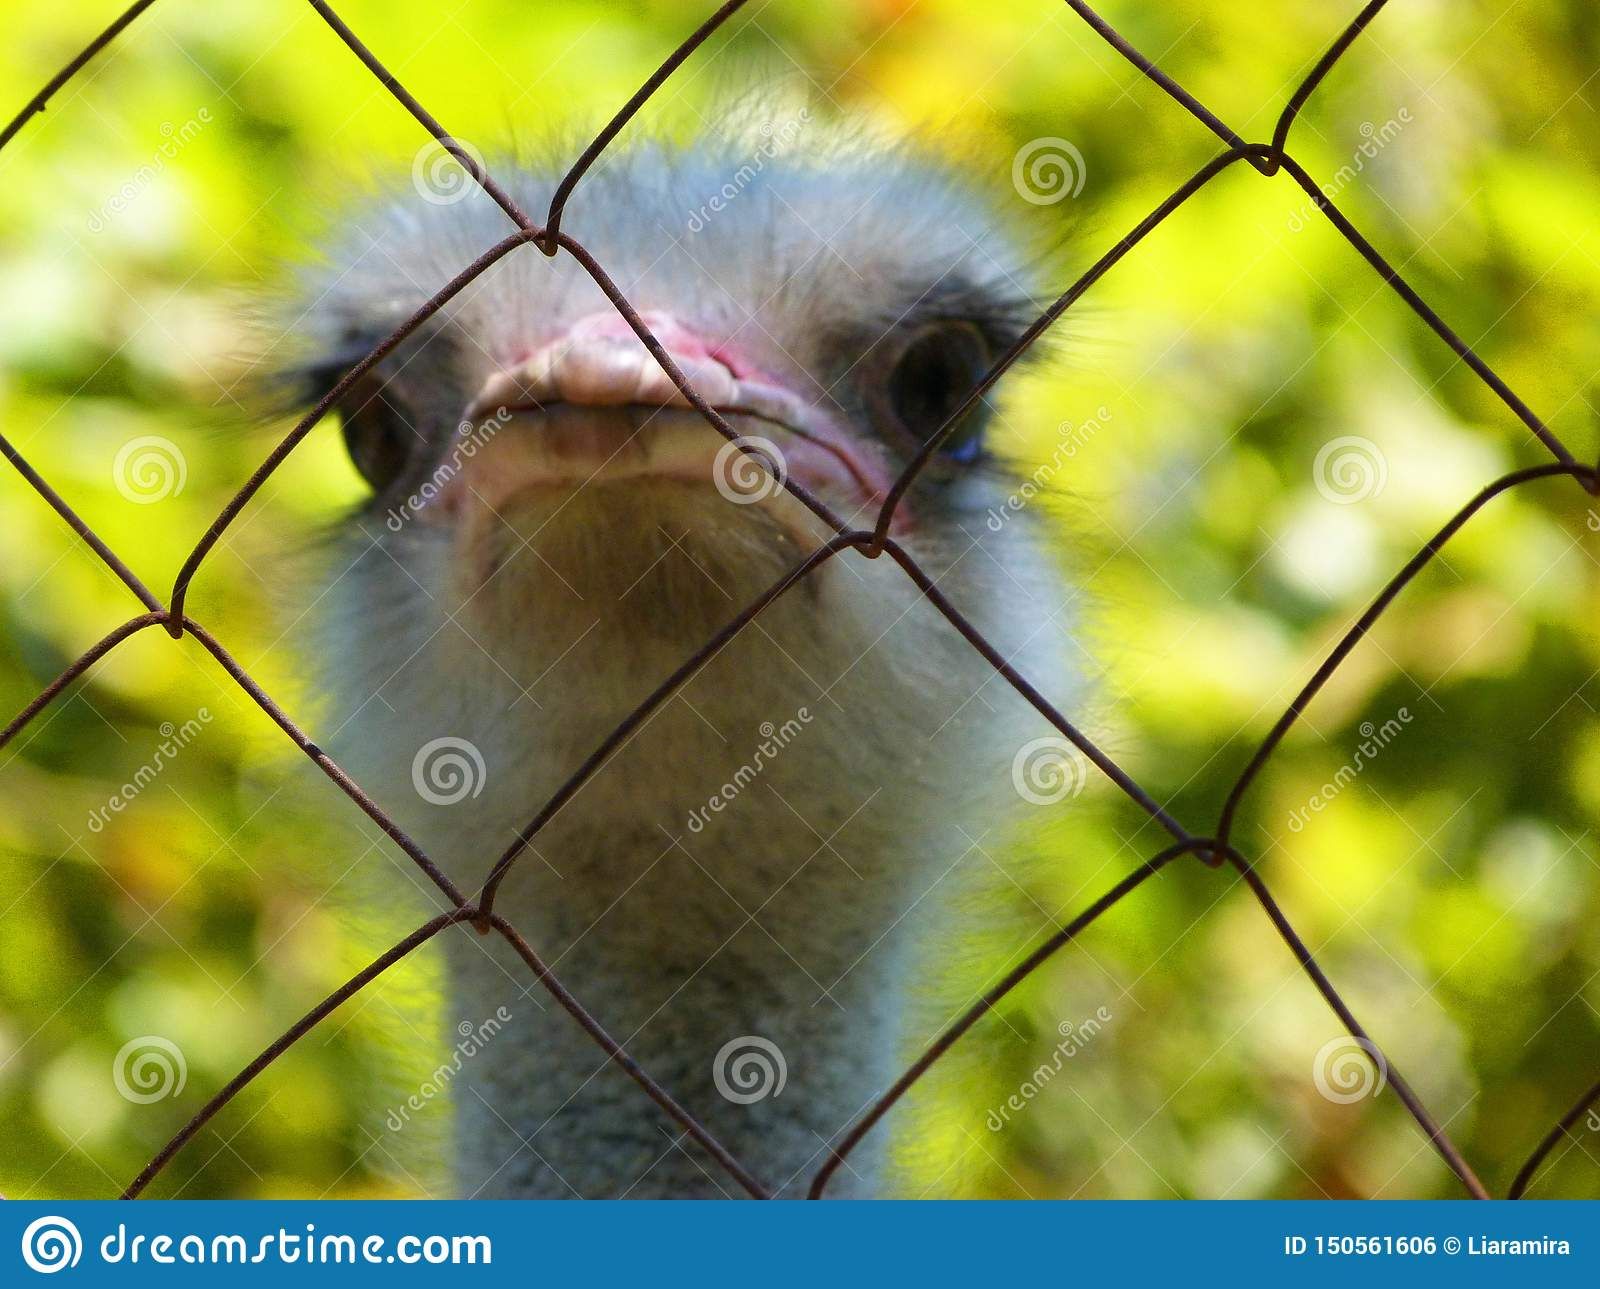 One really funny and adorable ostrich